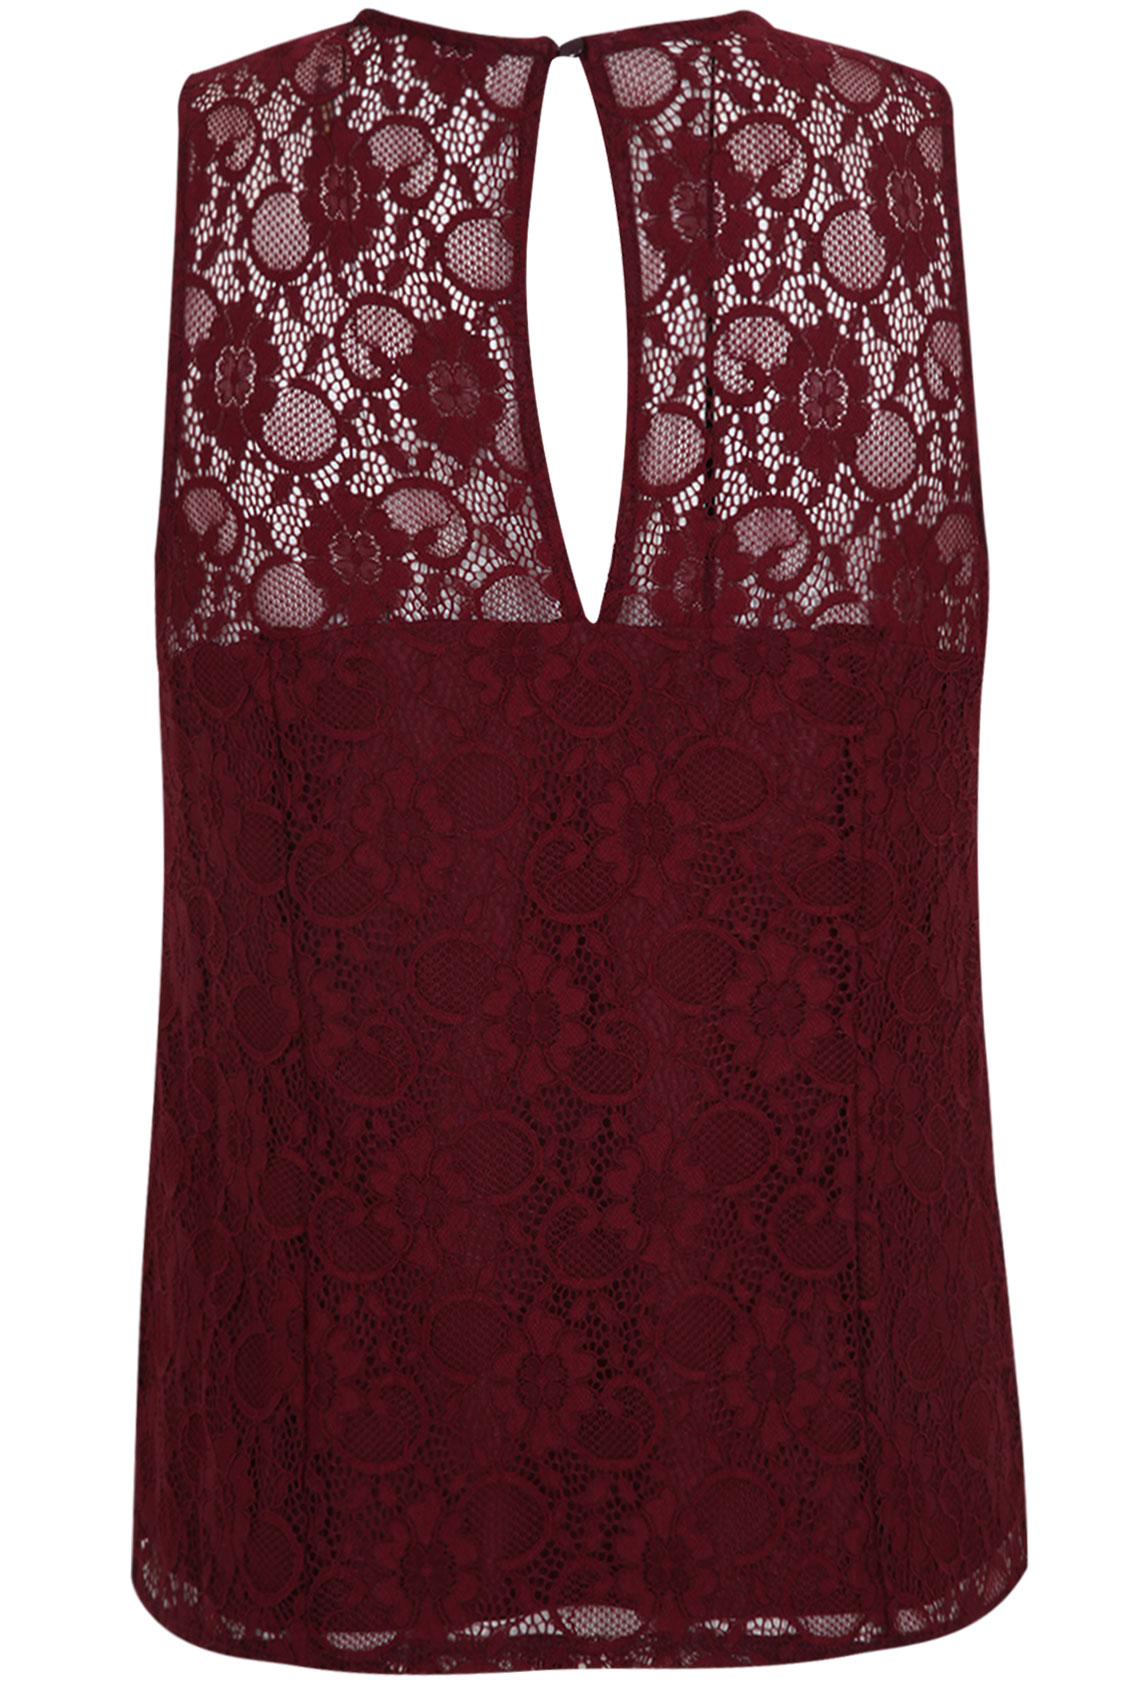 Find great deals on eBay for burgundy lace. Shop with confidence.